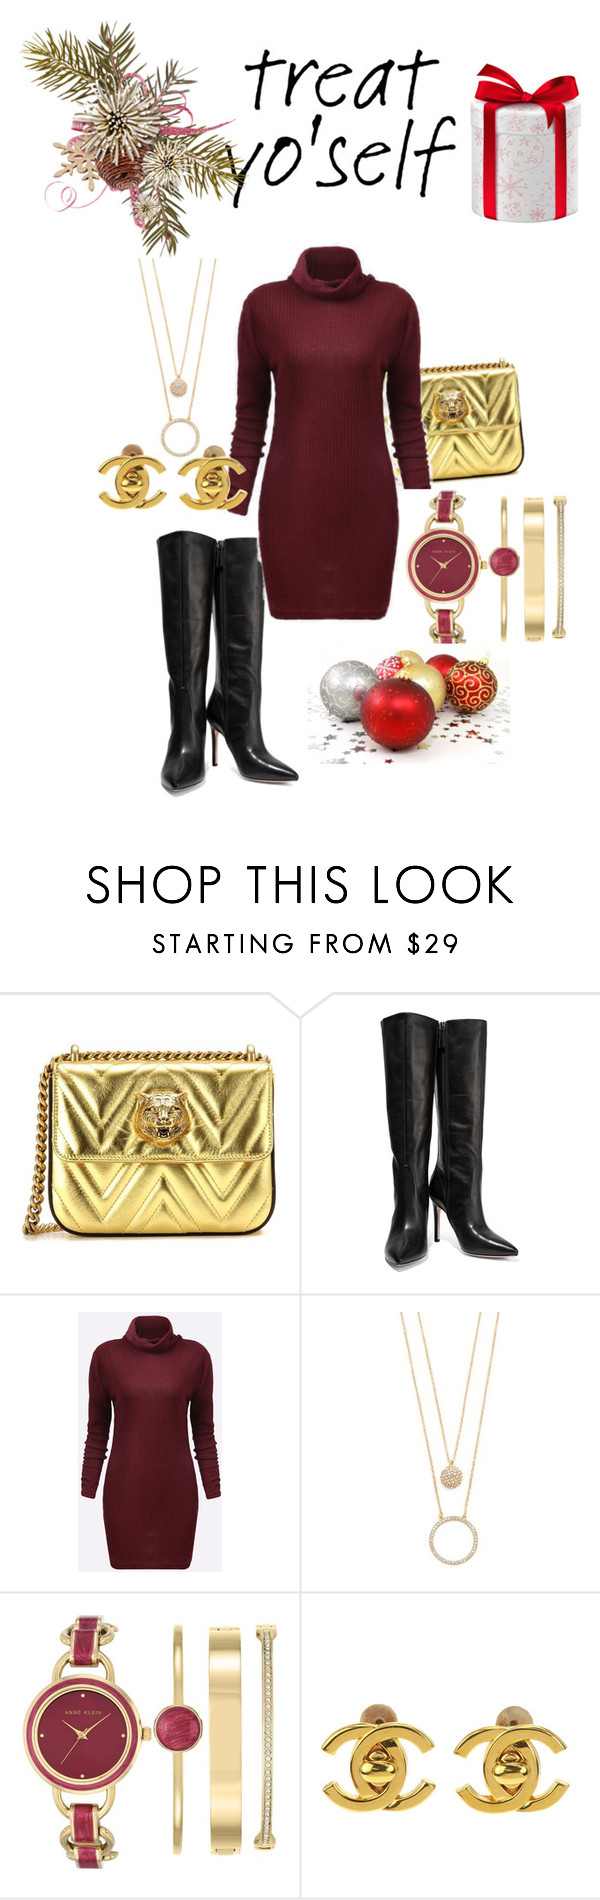 """""""Merry Christmas to me"""" by ashxoleyxo ❤ liked on Polyvore featuring Gucci, Halston Heritage, Kate Spade, Anne Klein, Chanel, trend and holidaystyle"""